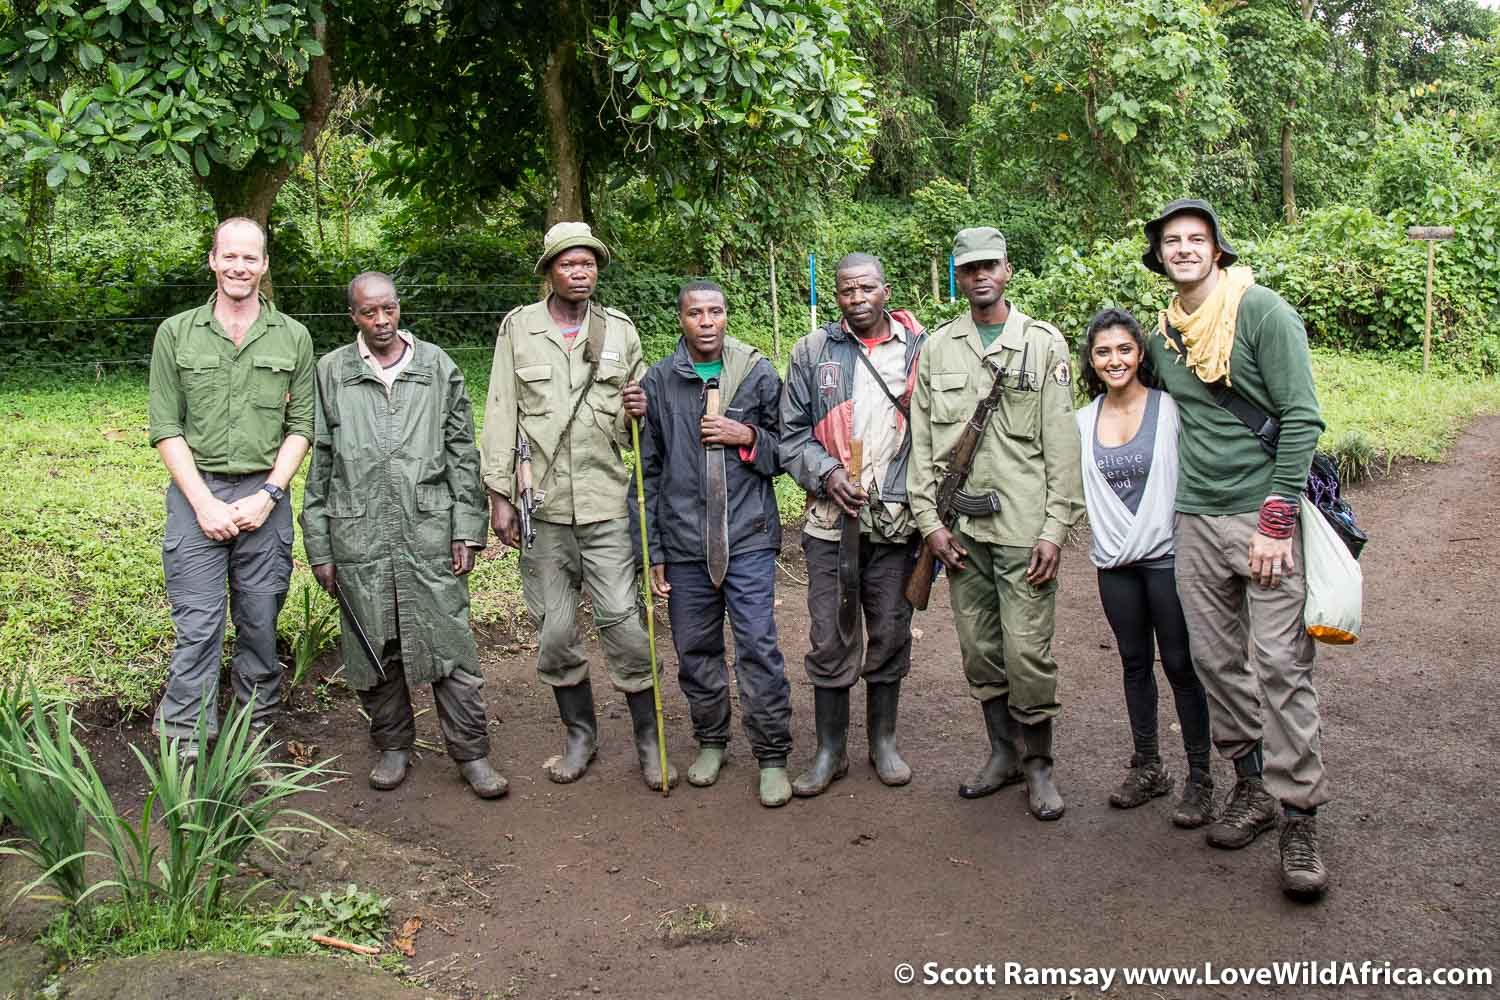 Post trek group photo. Thank you to Jean de Dieu-Bitamizac, Emanuel Bazimenyera, Theo Habimana, Dezire Kajambere and Richard Paluku for the memorable moments with the gorillas. The gorilla trekking industry is a big contributor of funds to the conservation of Virunga. Rwanda and Uganda's permits are upwards of $600 per person, but in the DRC, you can pay as low as $200 depending on time of year and nationality of passport. This for an hour of gorilla viewing...but it's so worth it.